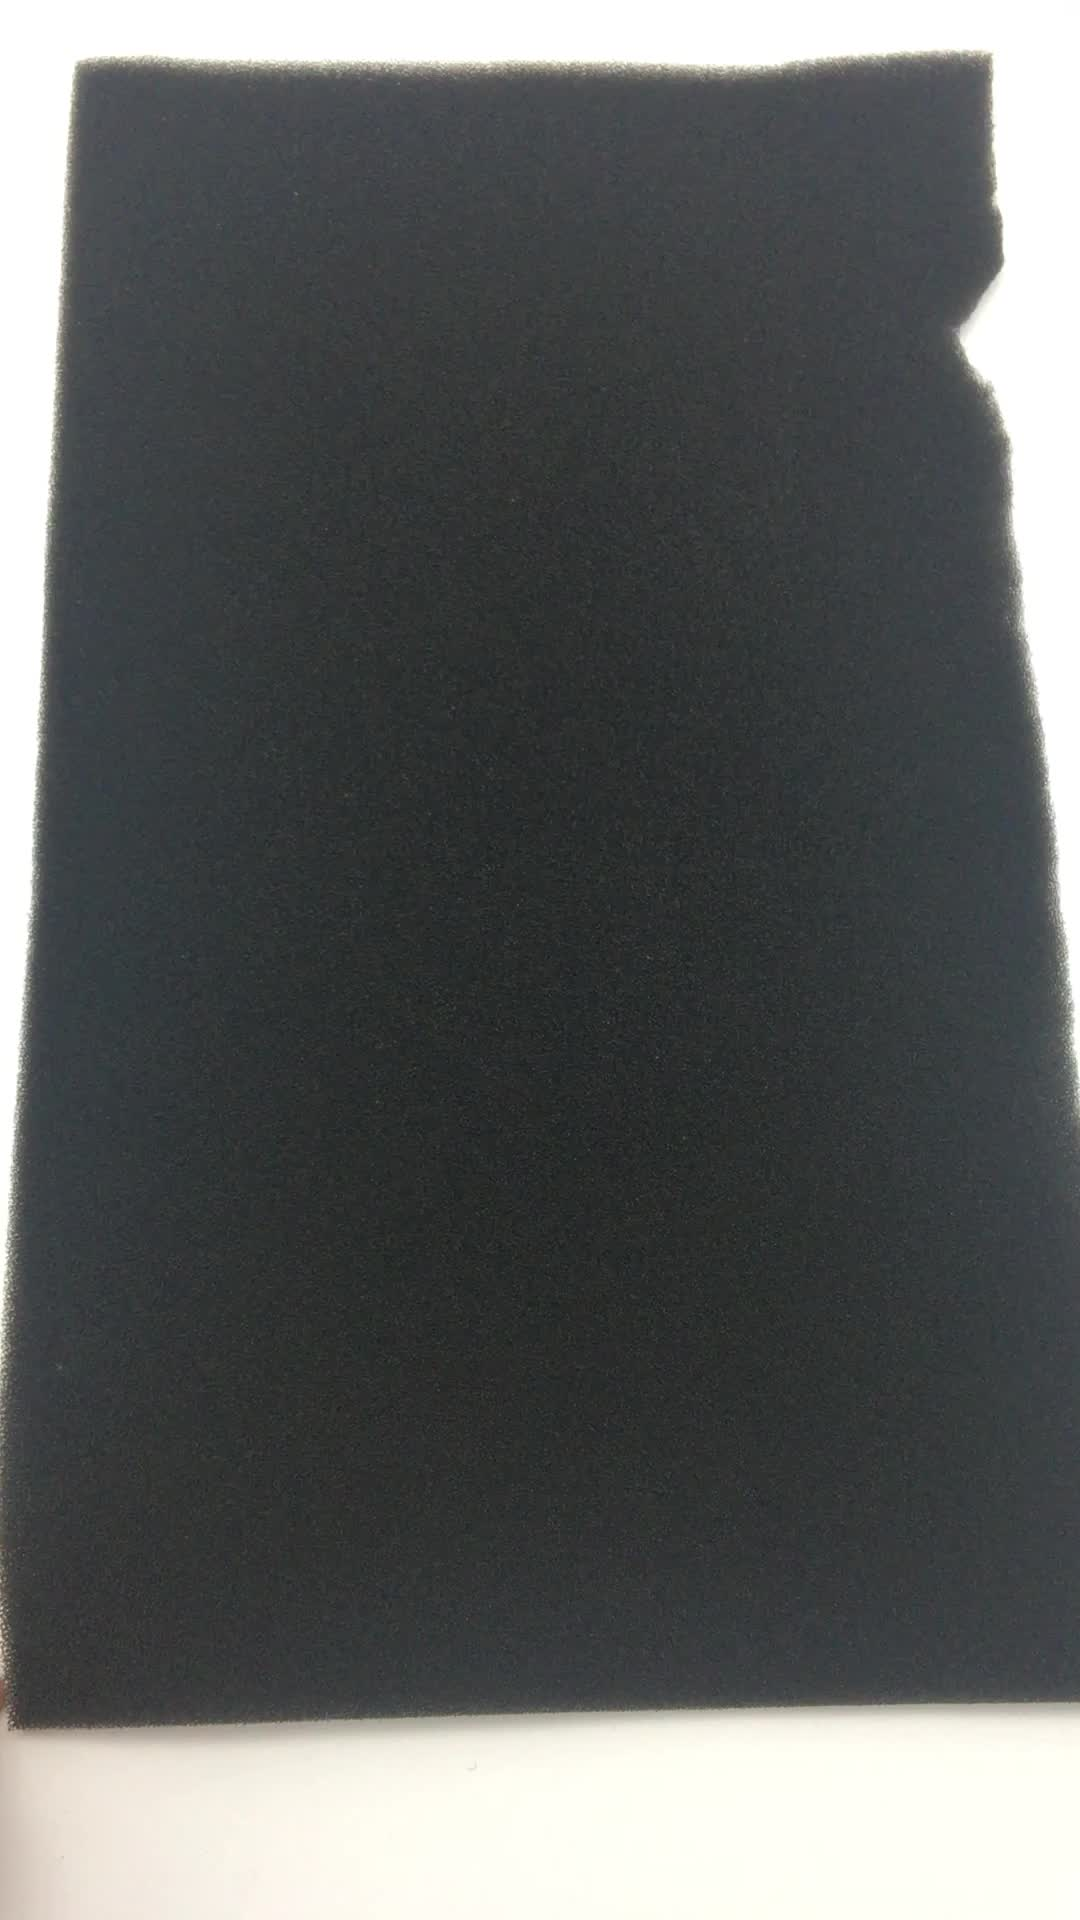 foam pads trusted supplier